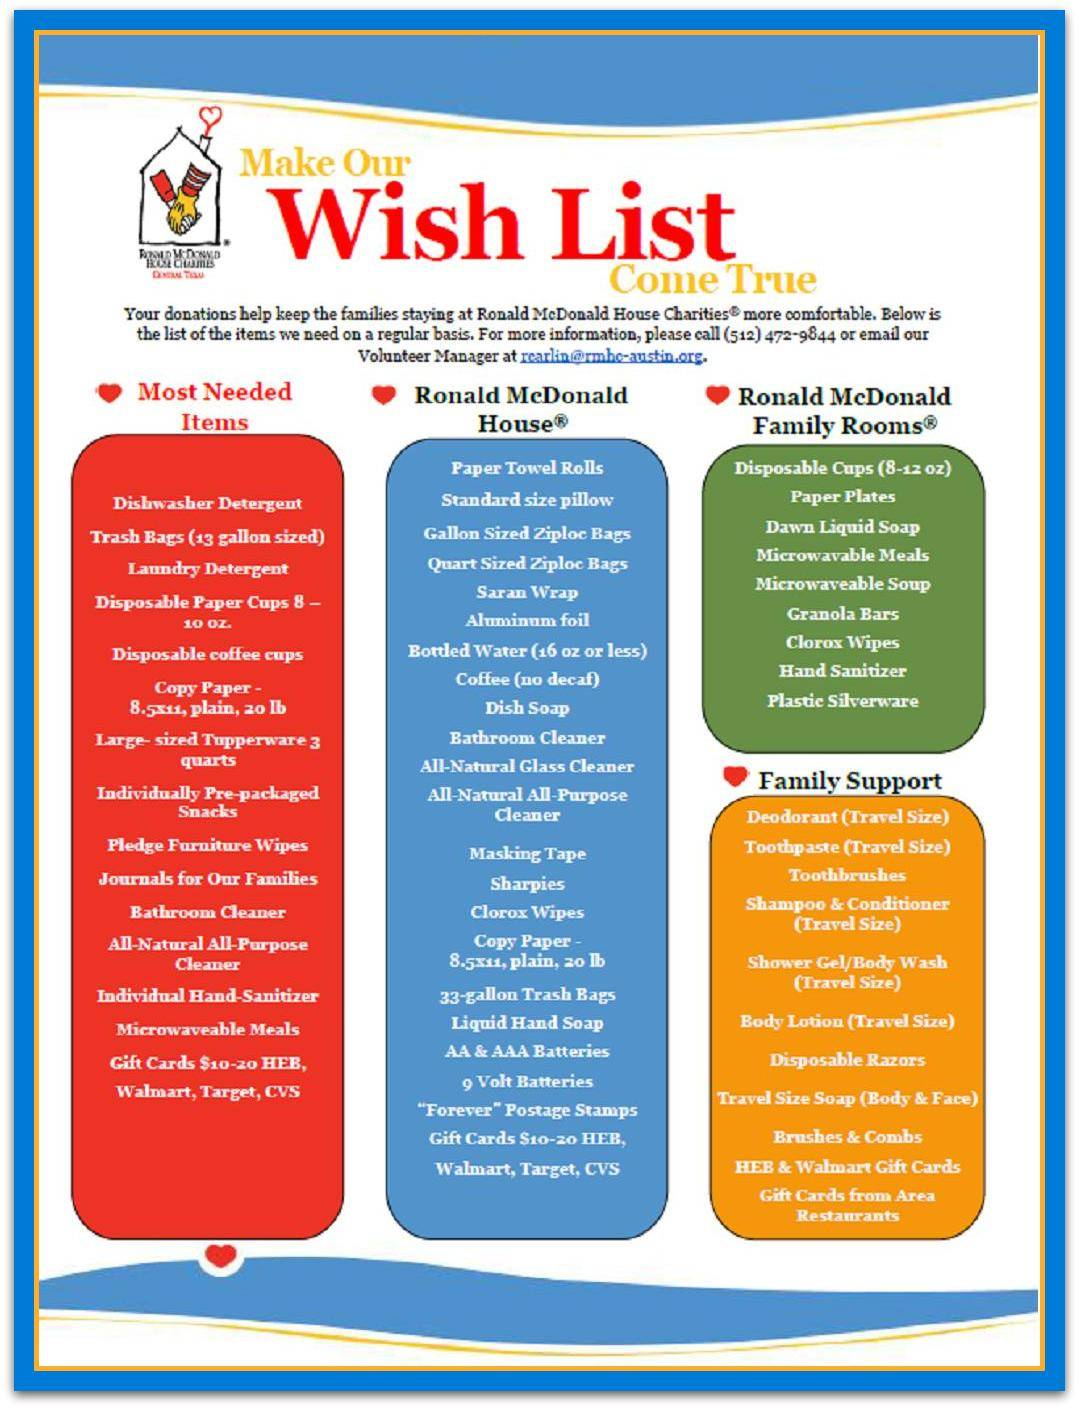 help austin's ronald mcdonald's house wish list